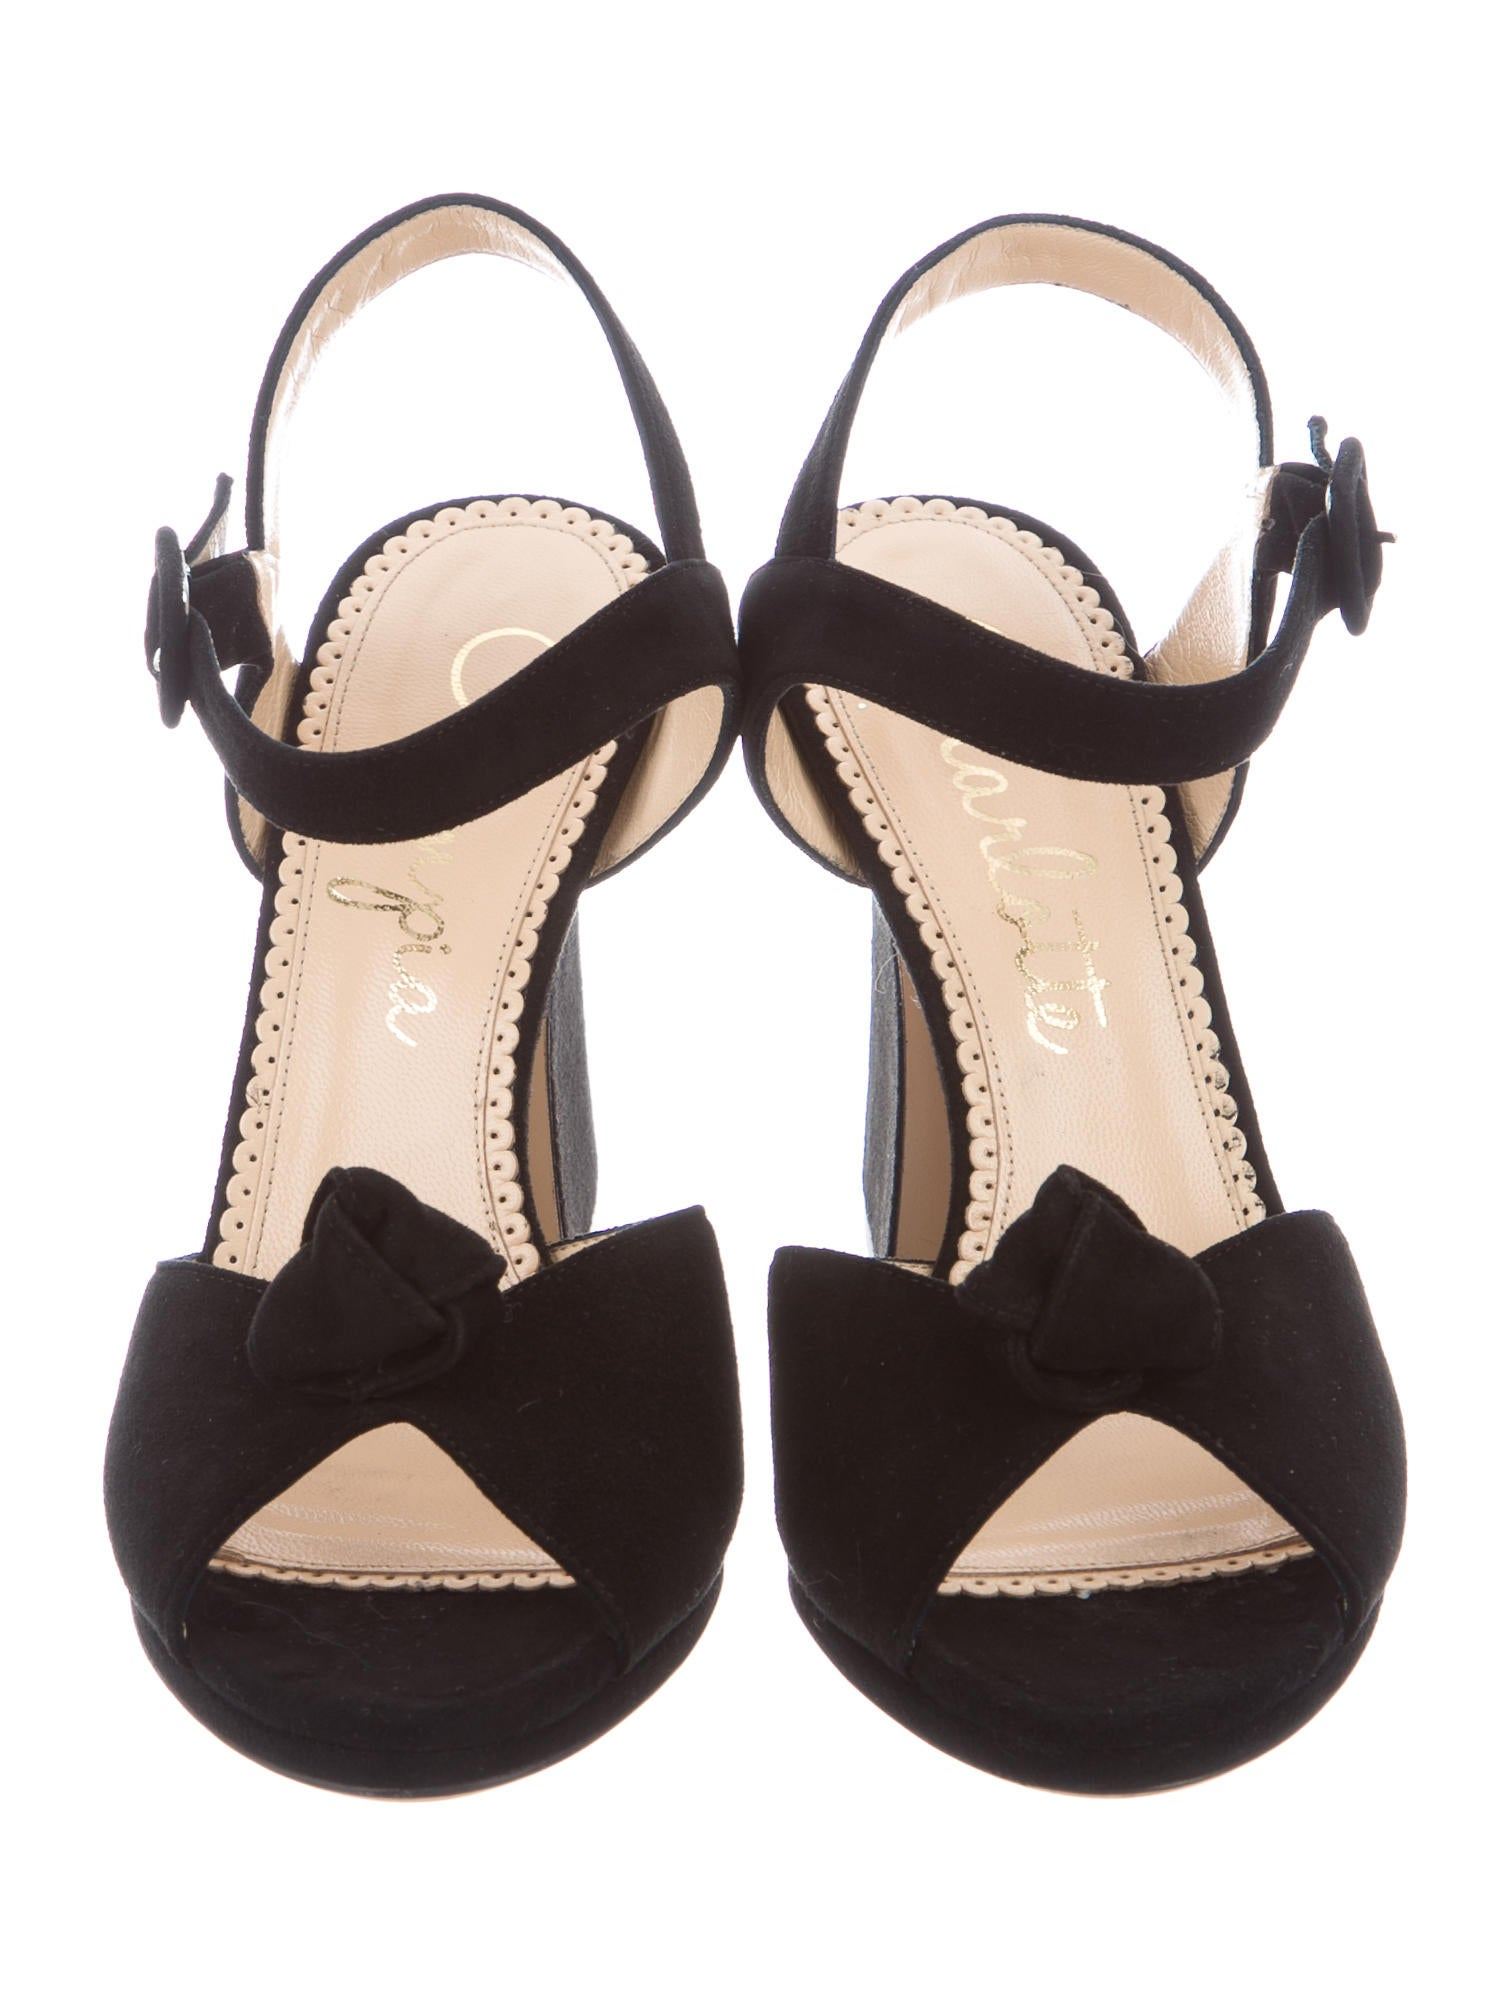 Charlotte Olympia Vega Knot-Accented Sandals clearance low cost Jl8m0HZna